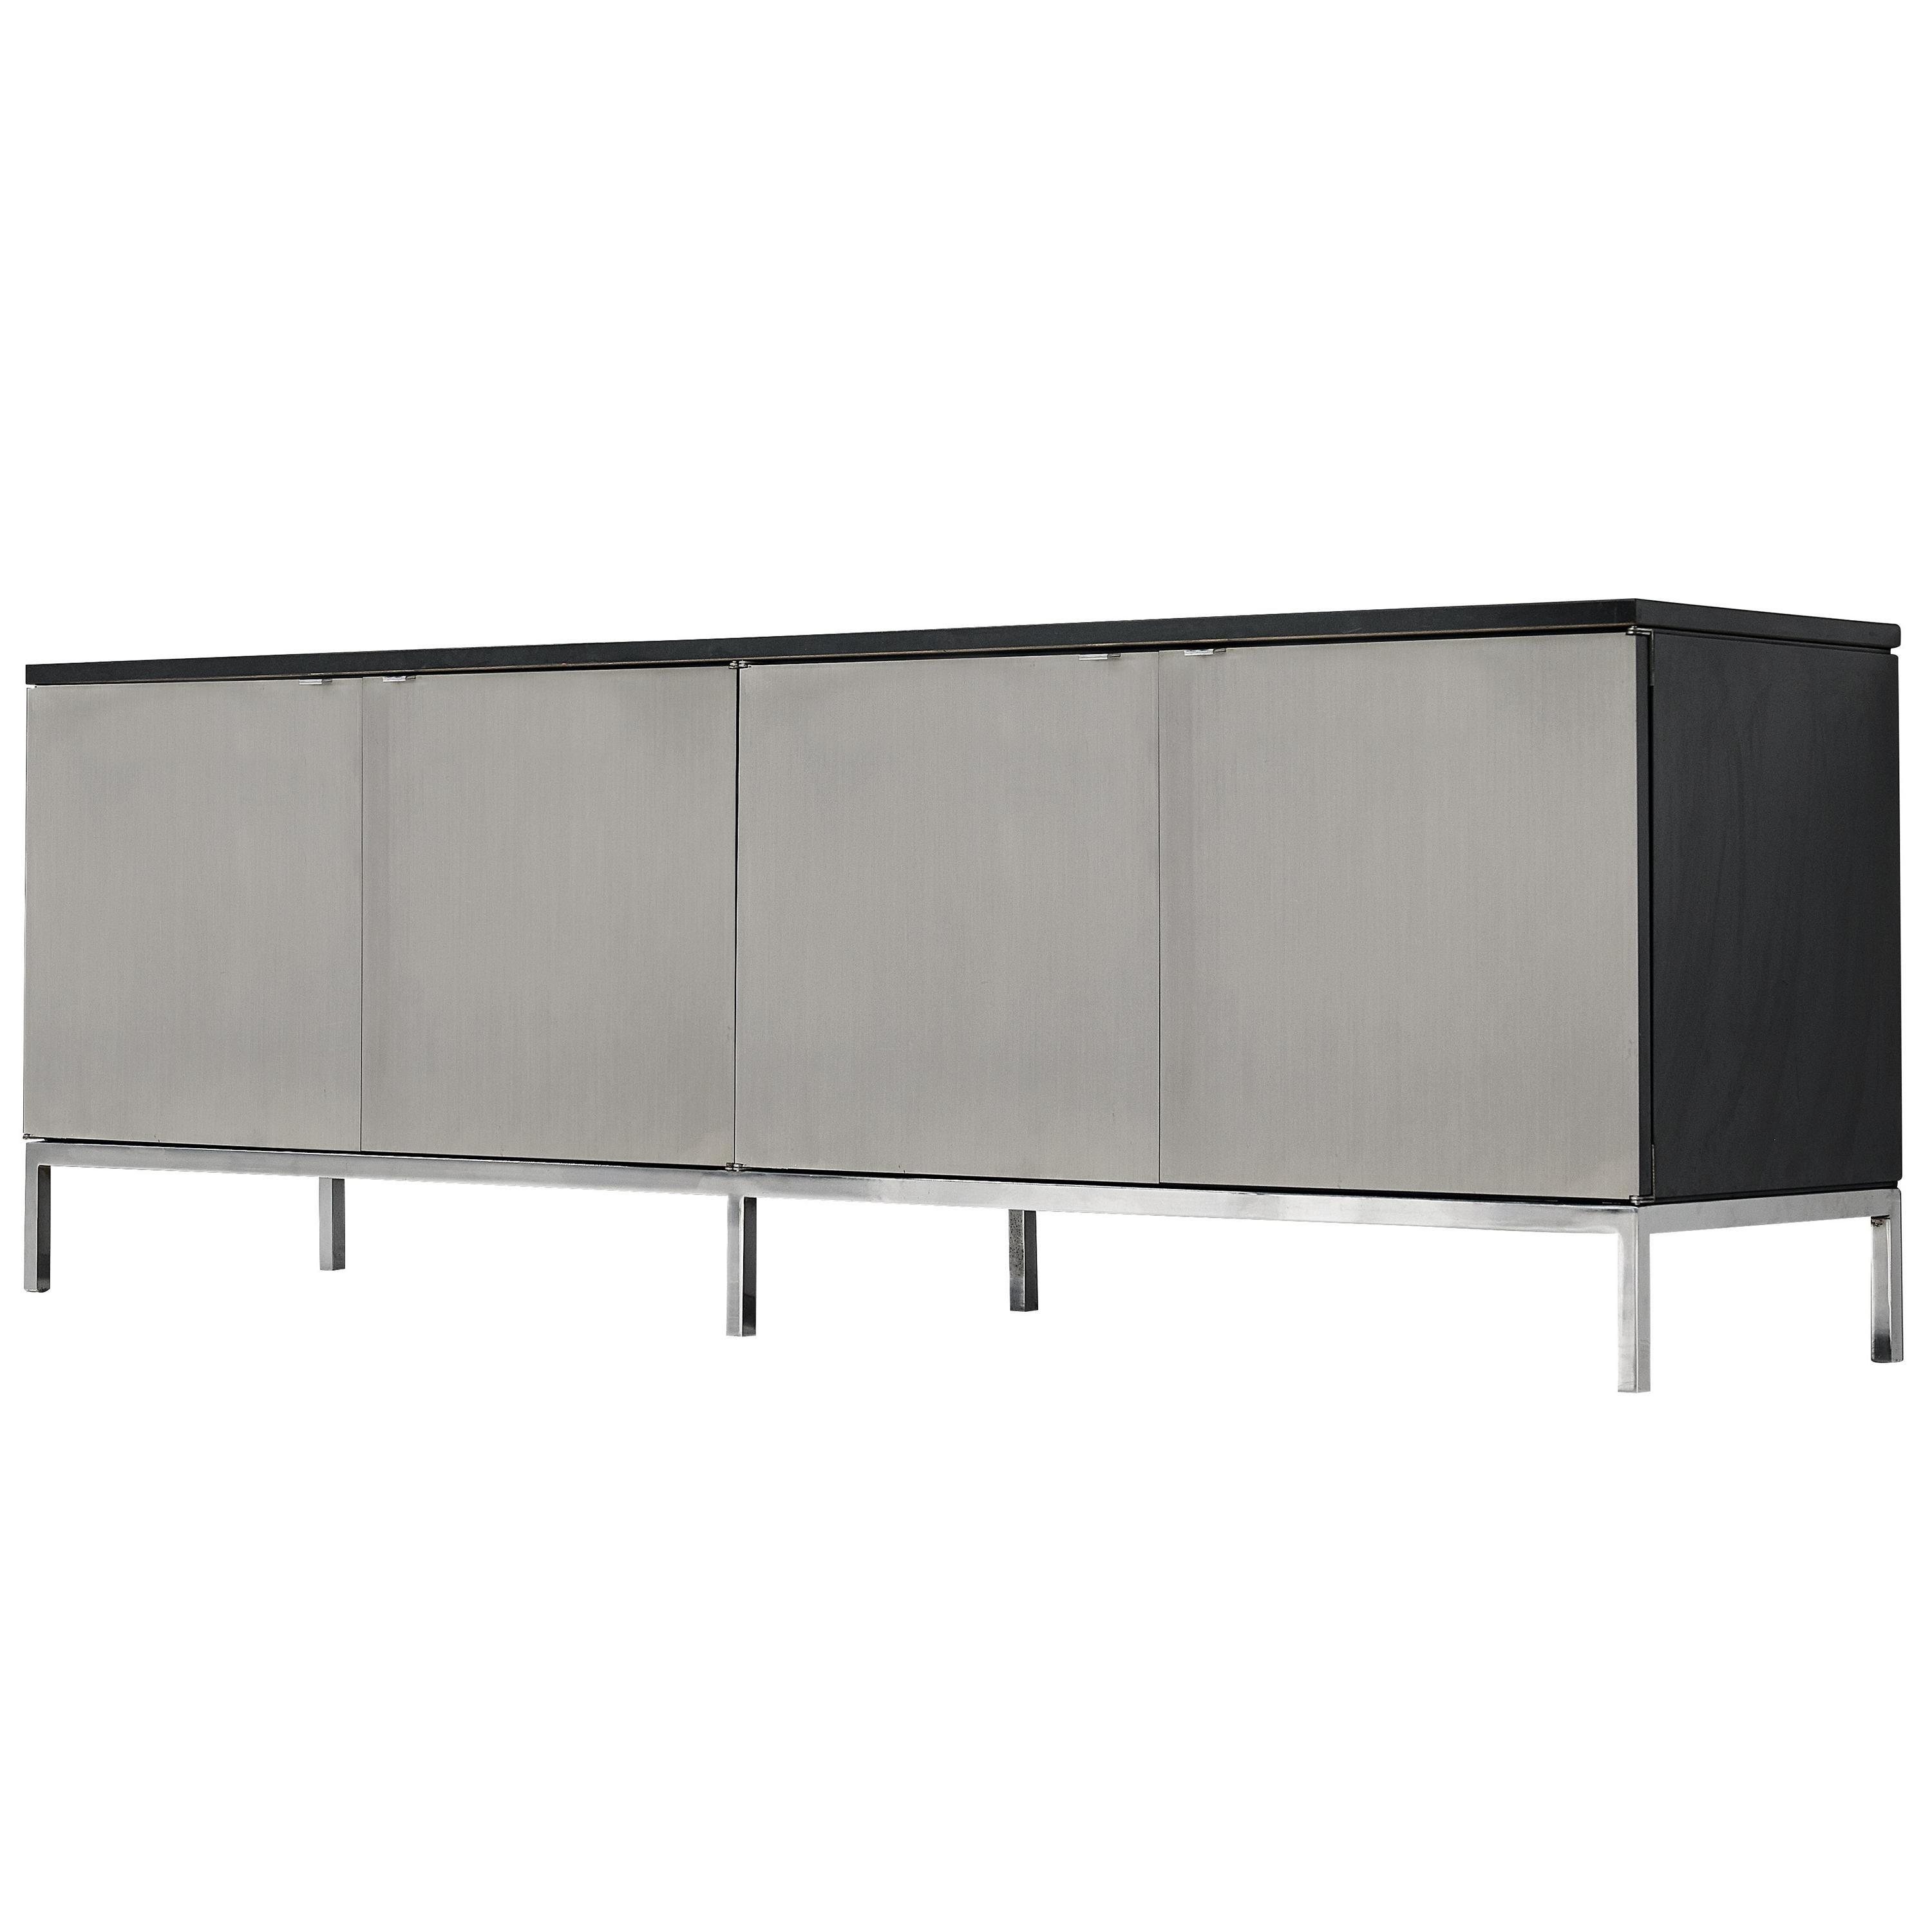 Florence Knoll Sideboard with Brushed Steel Doors